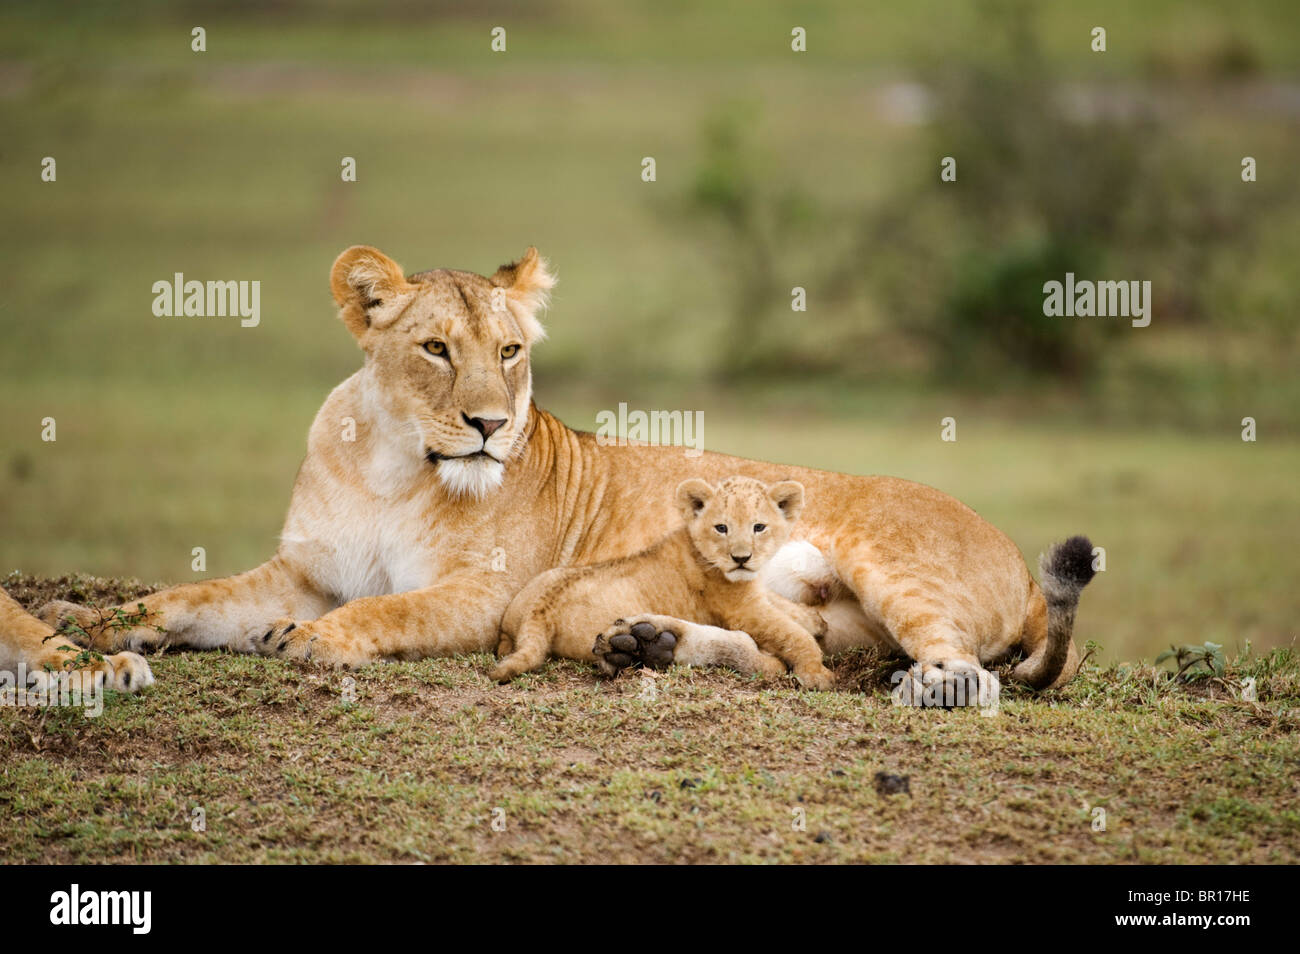 Lion with cub (Panthero leo), Serengeti National Park, Tanzania - Stock Image